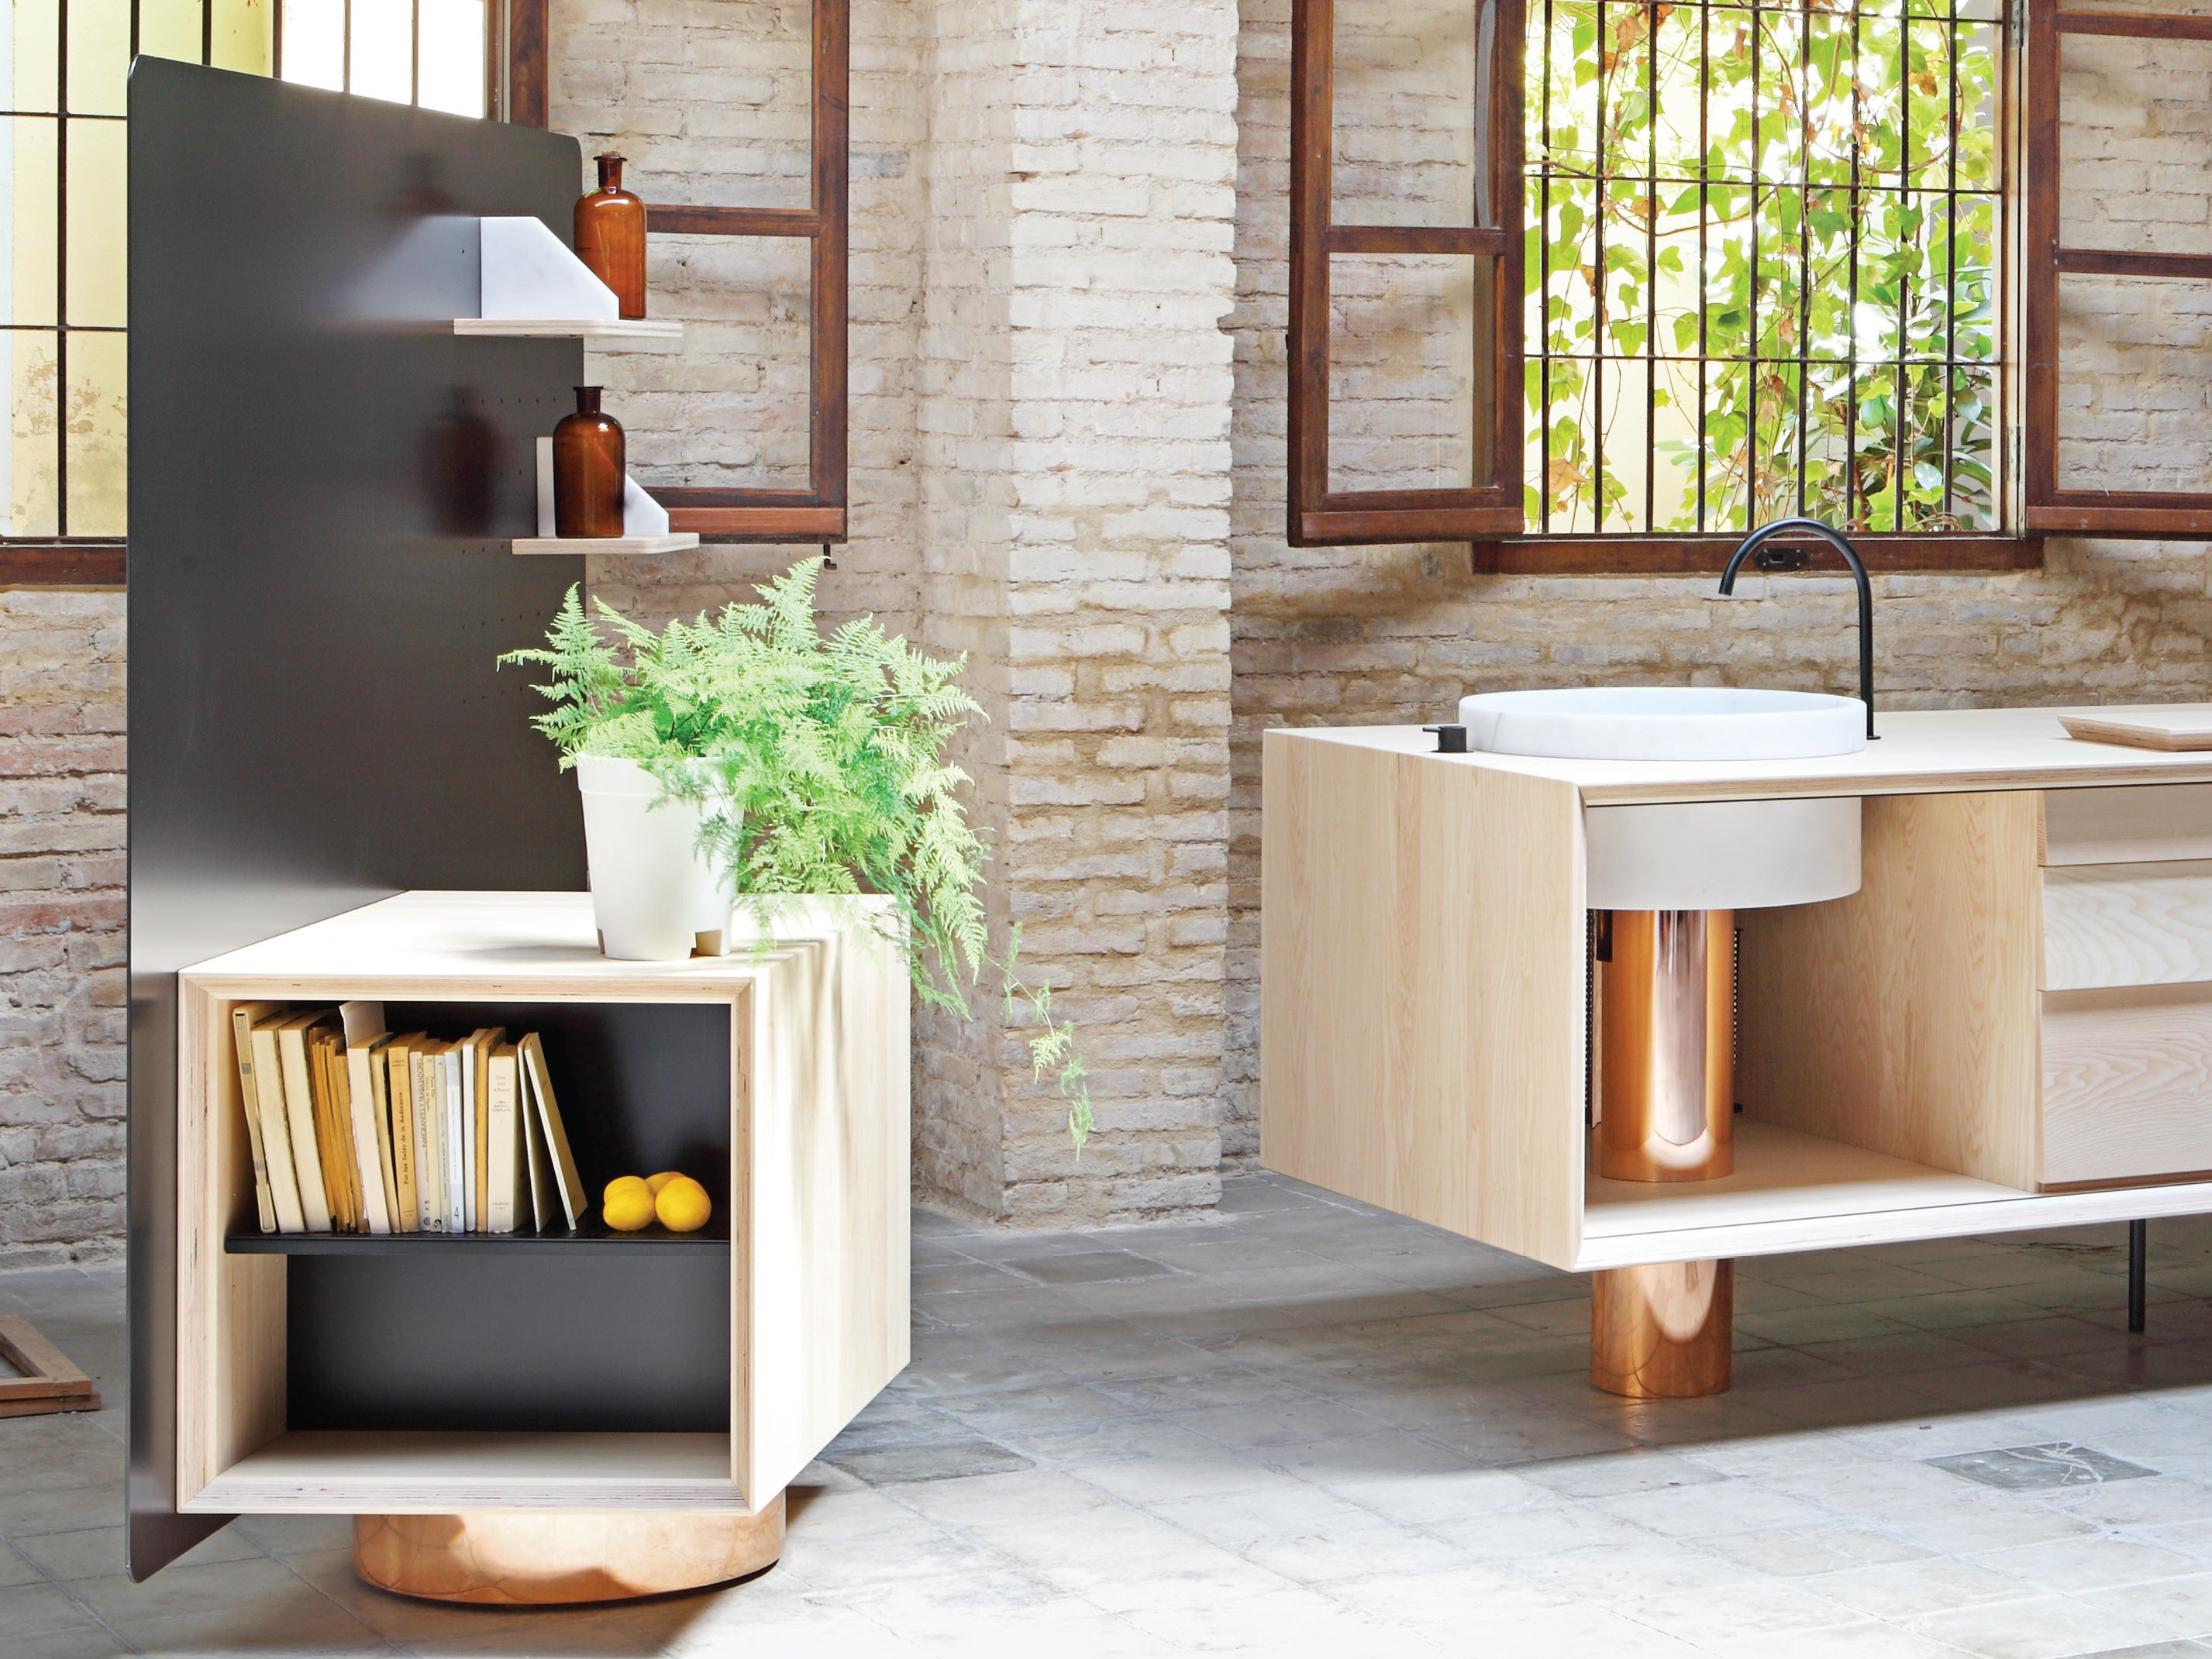 FLOAT Minicucina by Miras design Alberto Sanchez